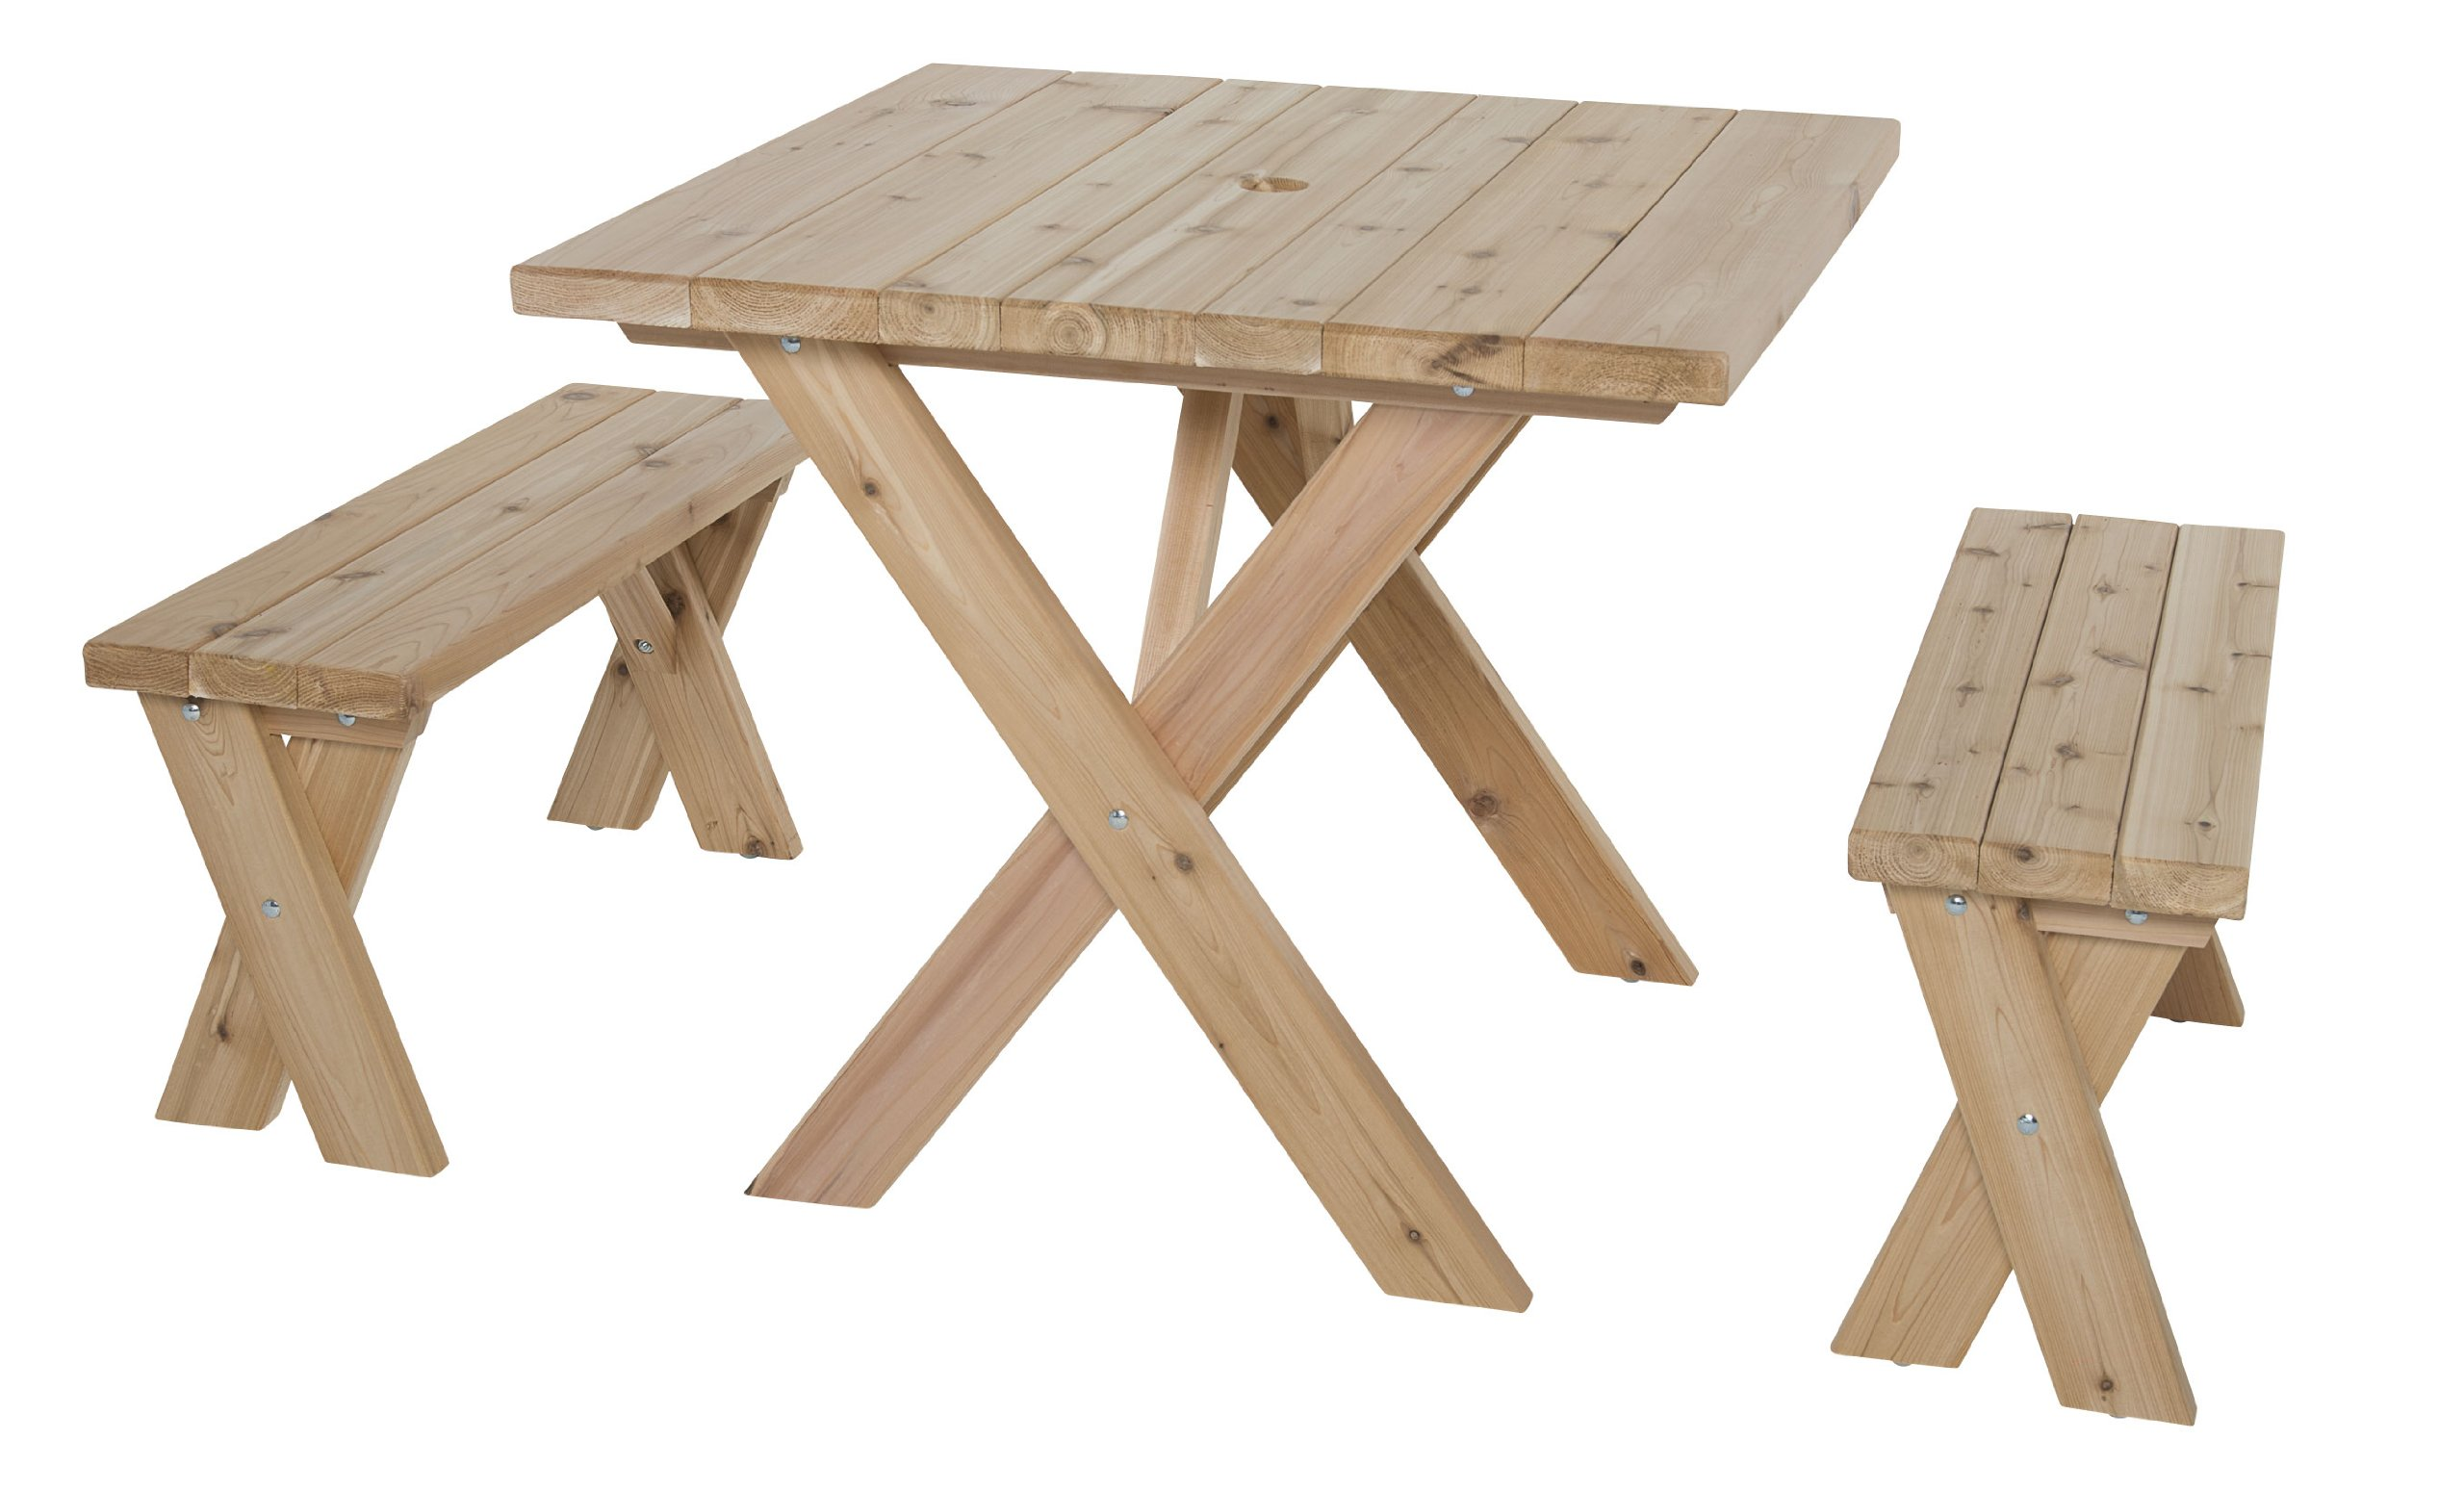 Wooden Picnic Table - American Cross Leg Outdoor Dining Set with 2 Benches, Umbrella Hole - Rectangular 35.5 x 34.5 x 30